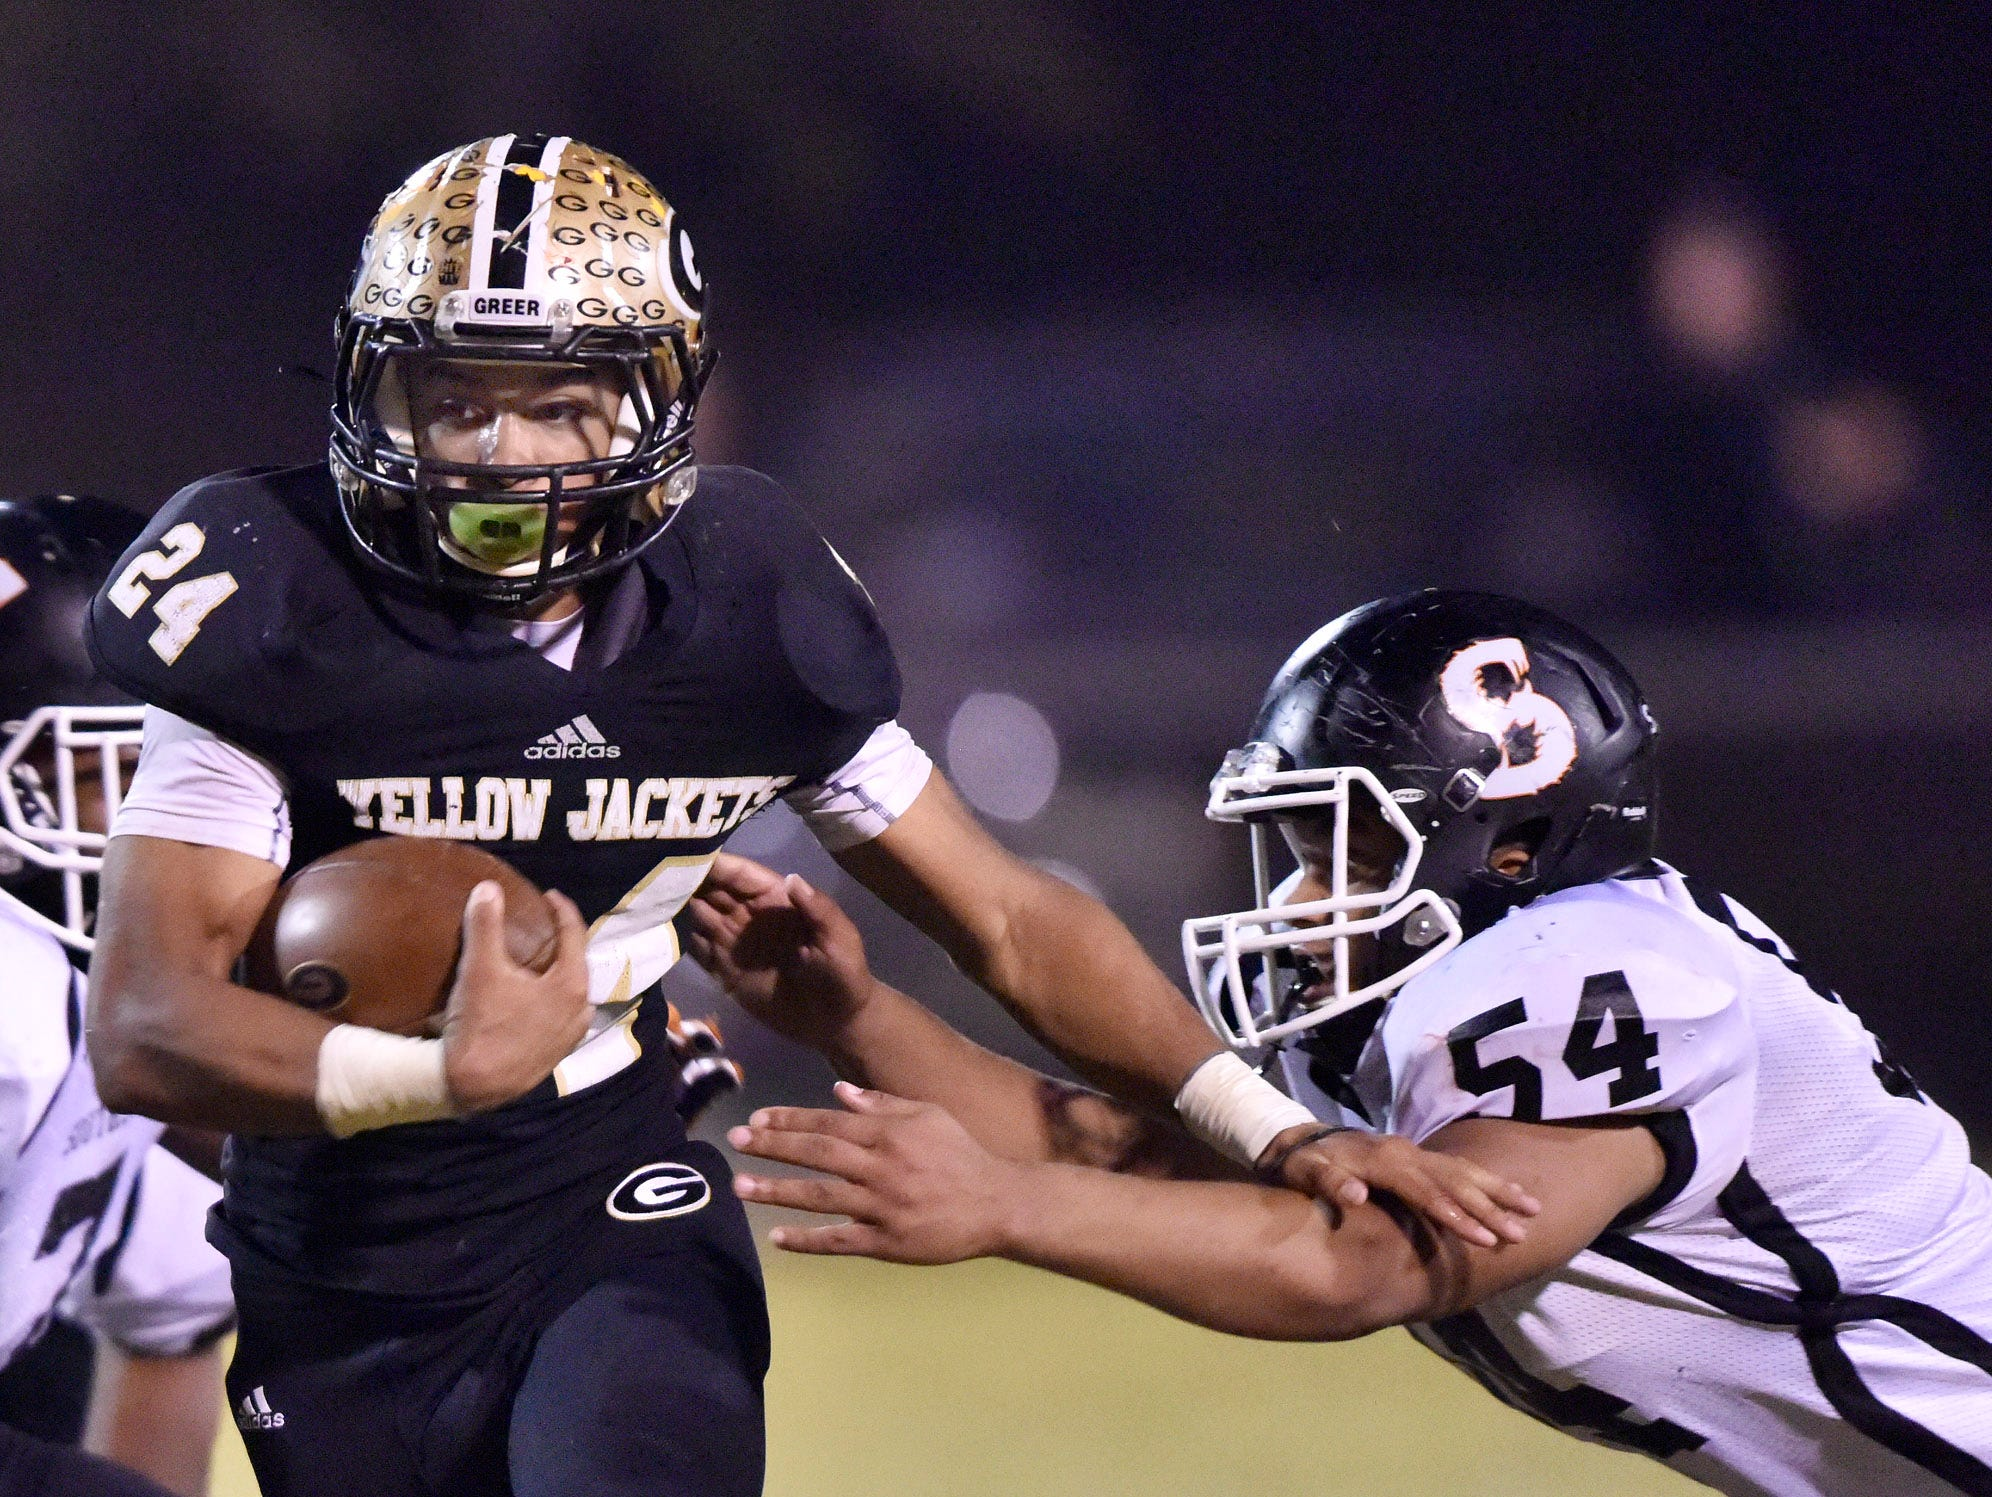 Greer's Adrian McGee (24) escapes Southside's Anthony Smith (54).